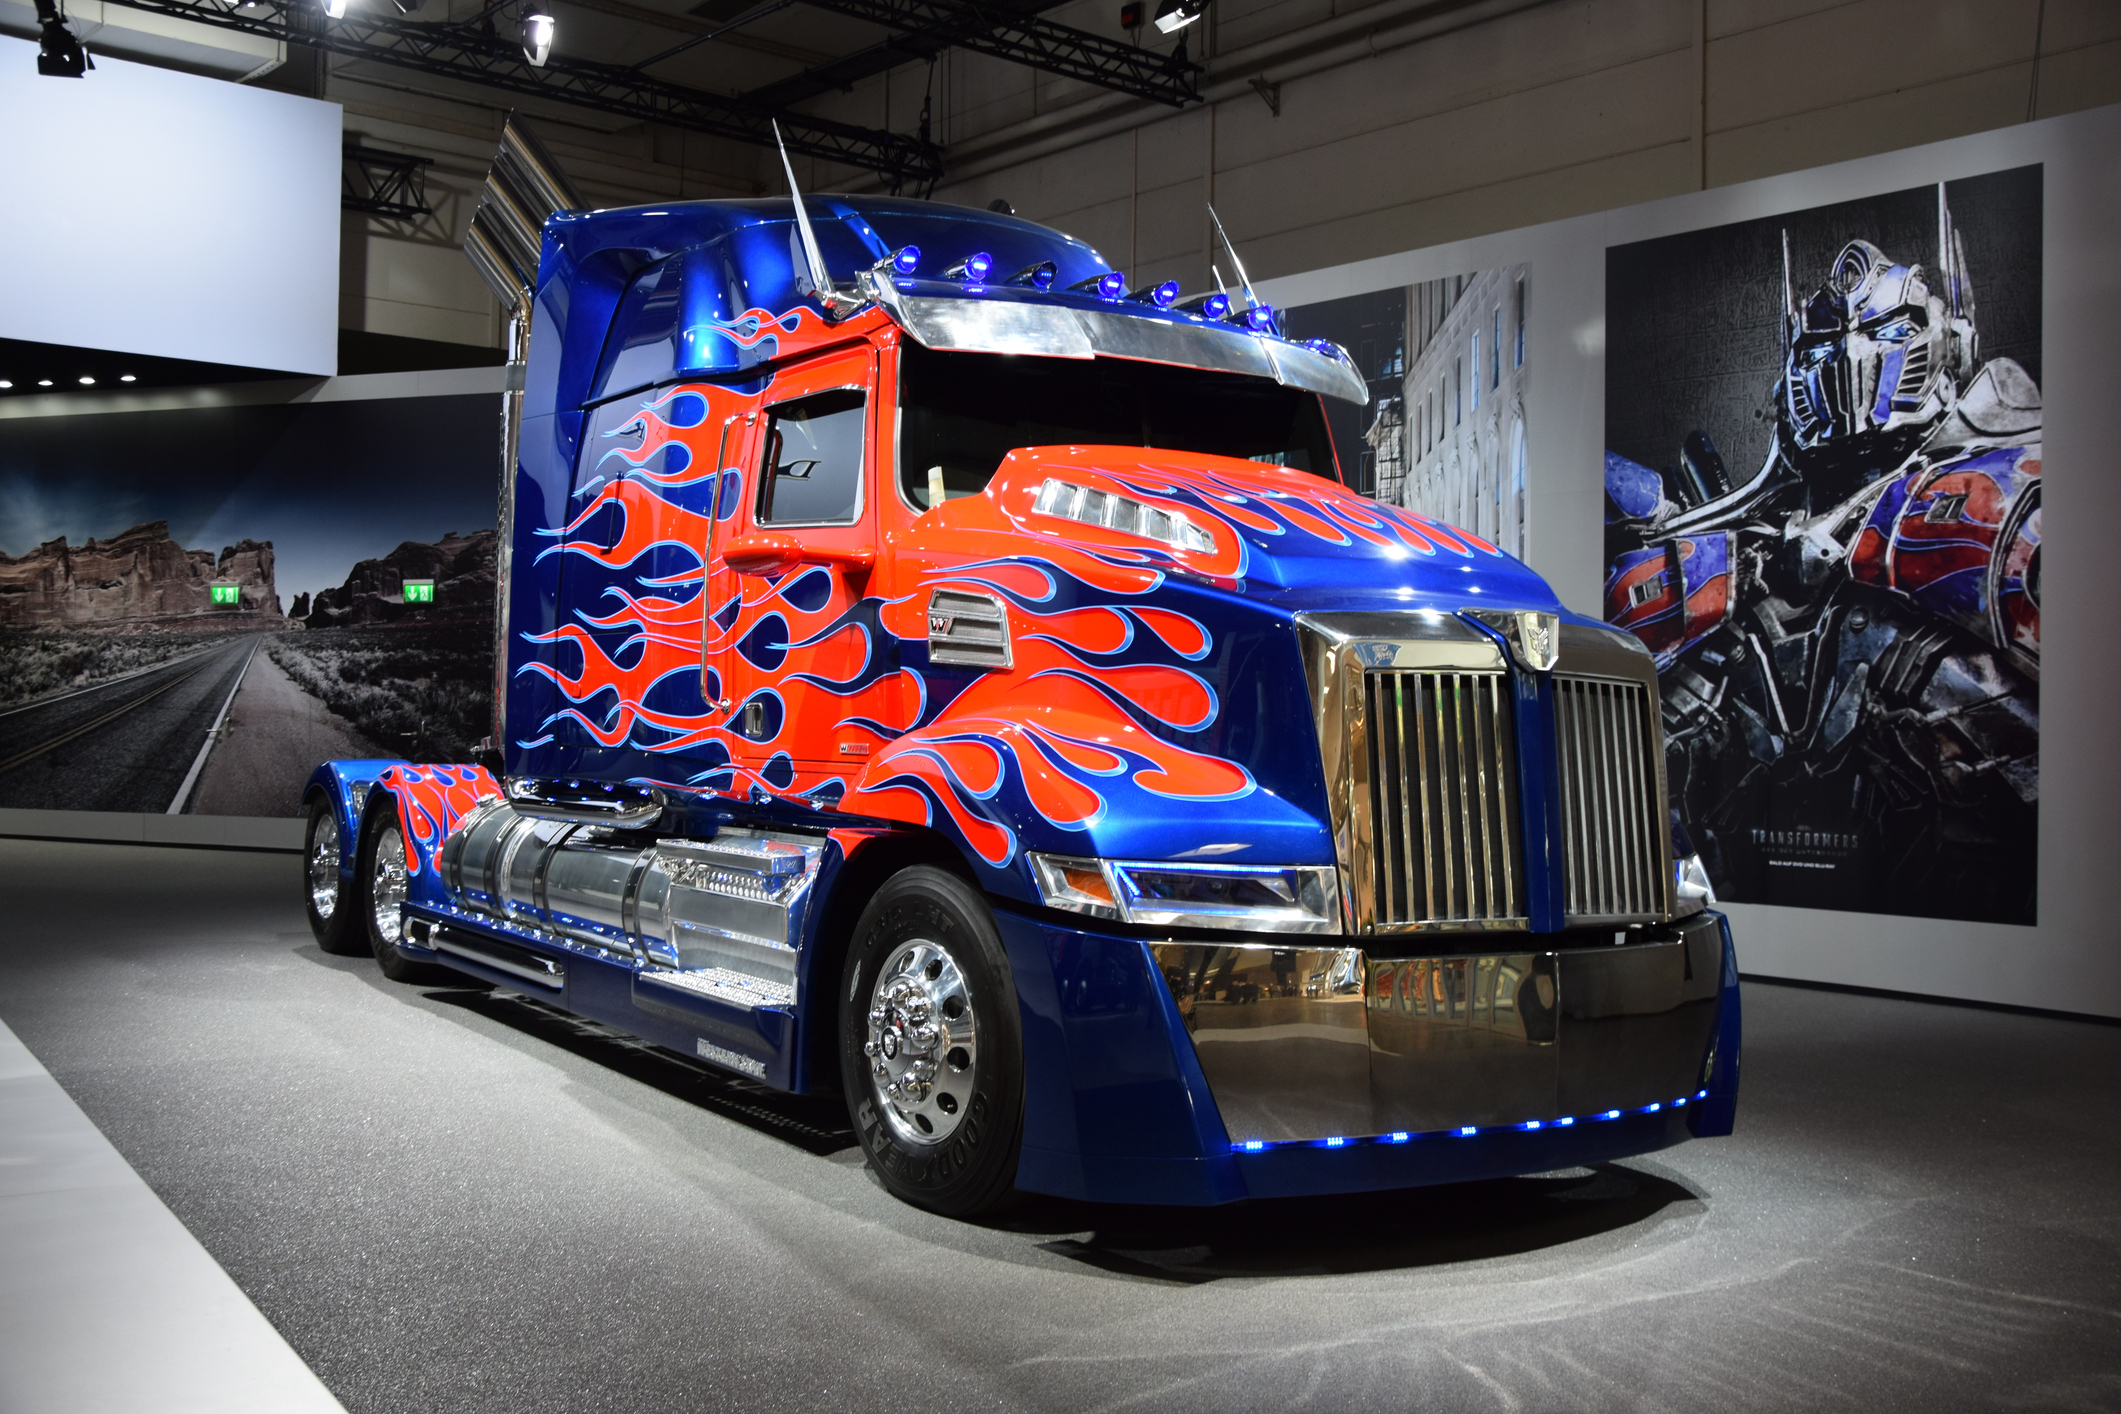 Optimus Prime - Western Star truck transformers | Today's ...